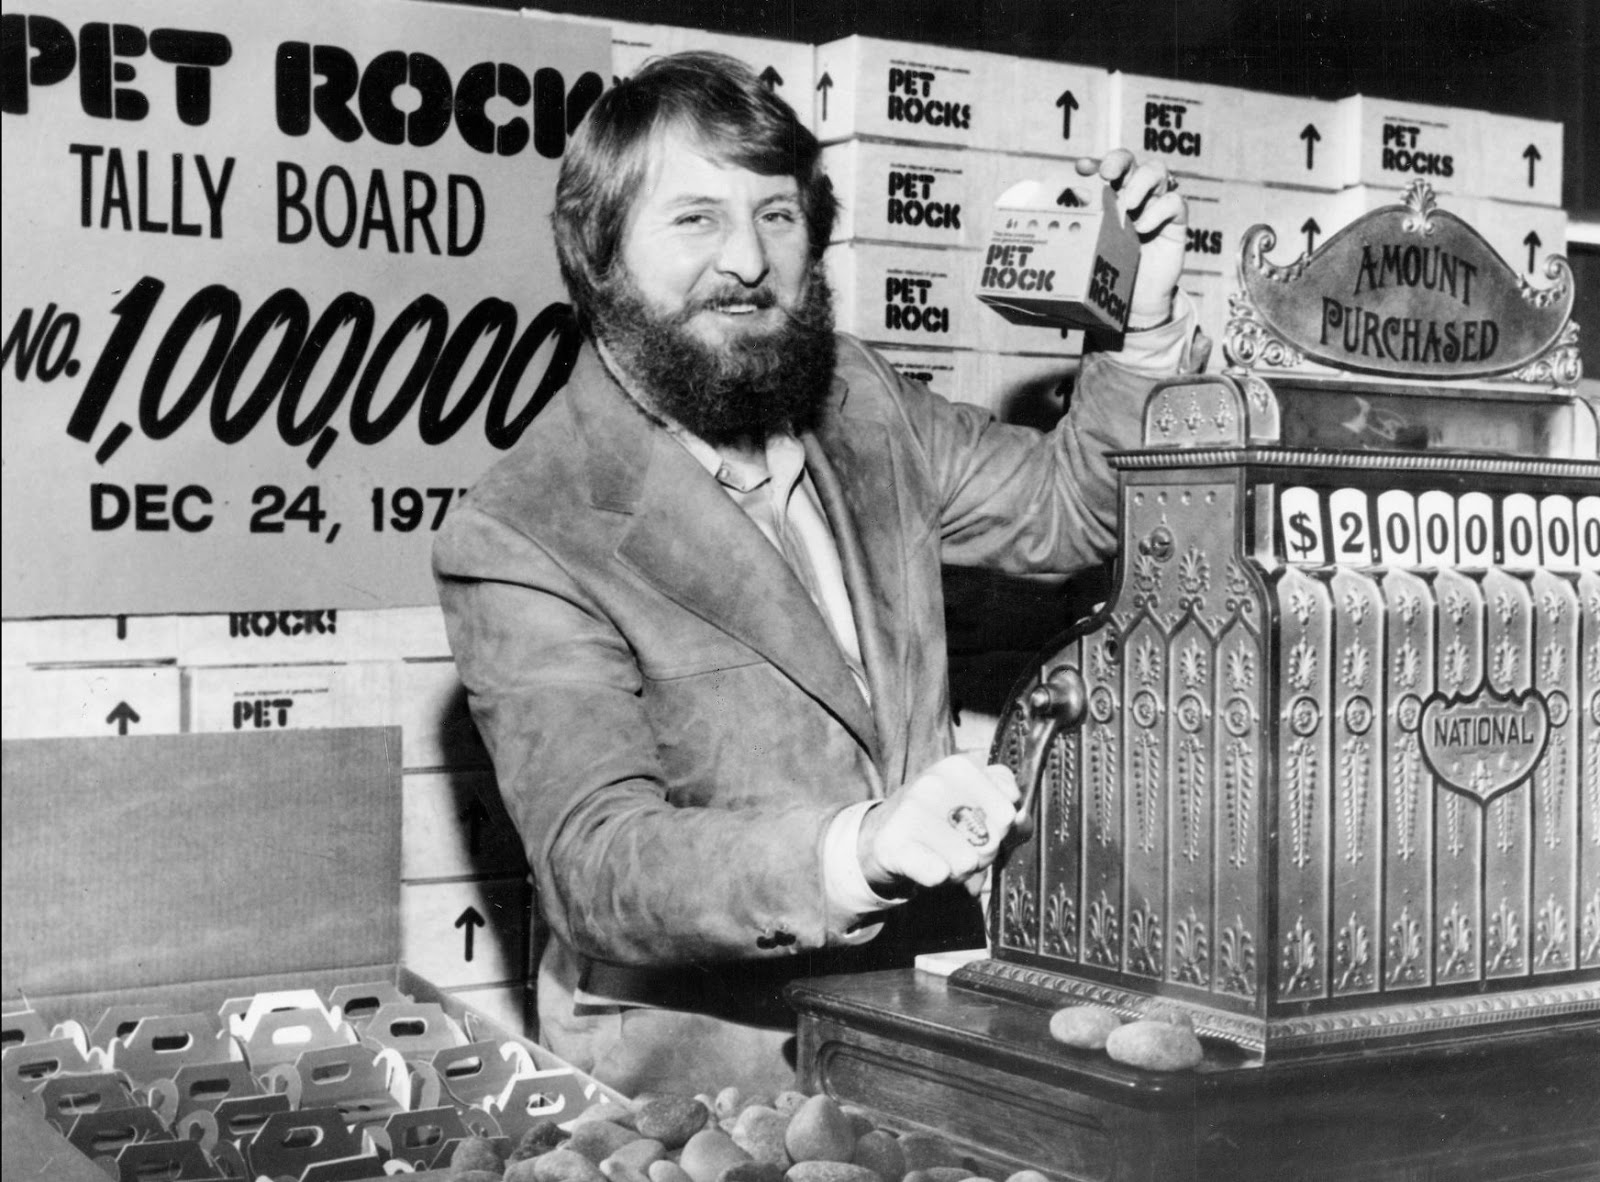 Gary Dahl, the businessman who sold stones as pets and became a millionaire